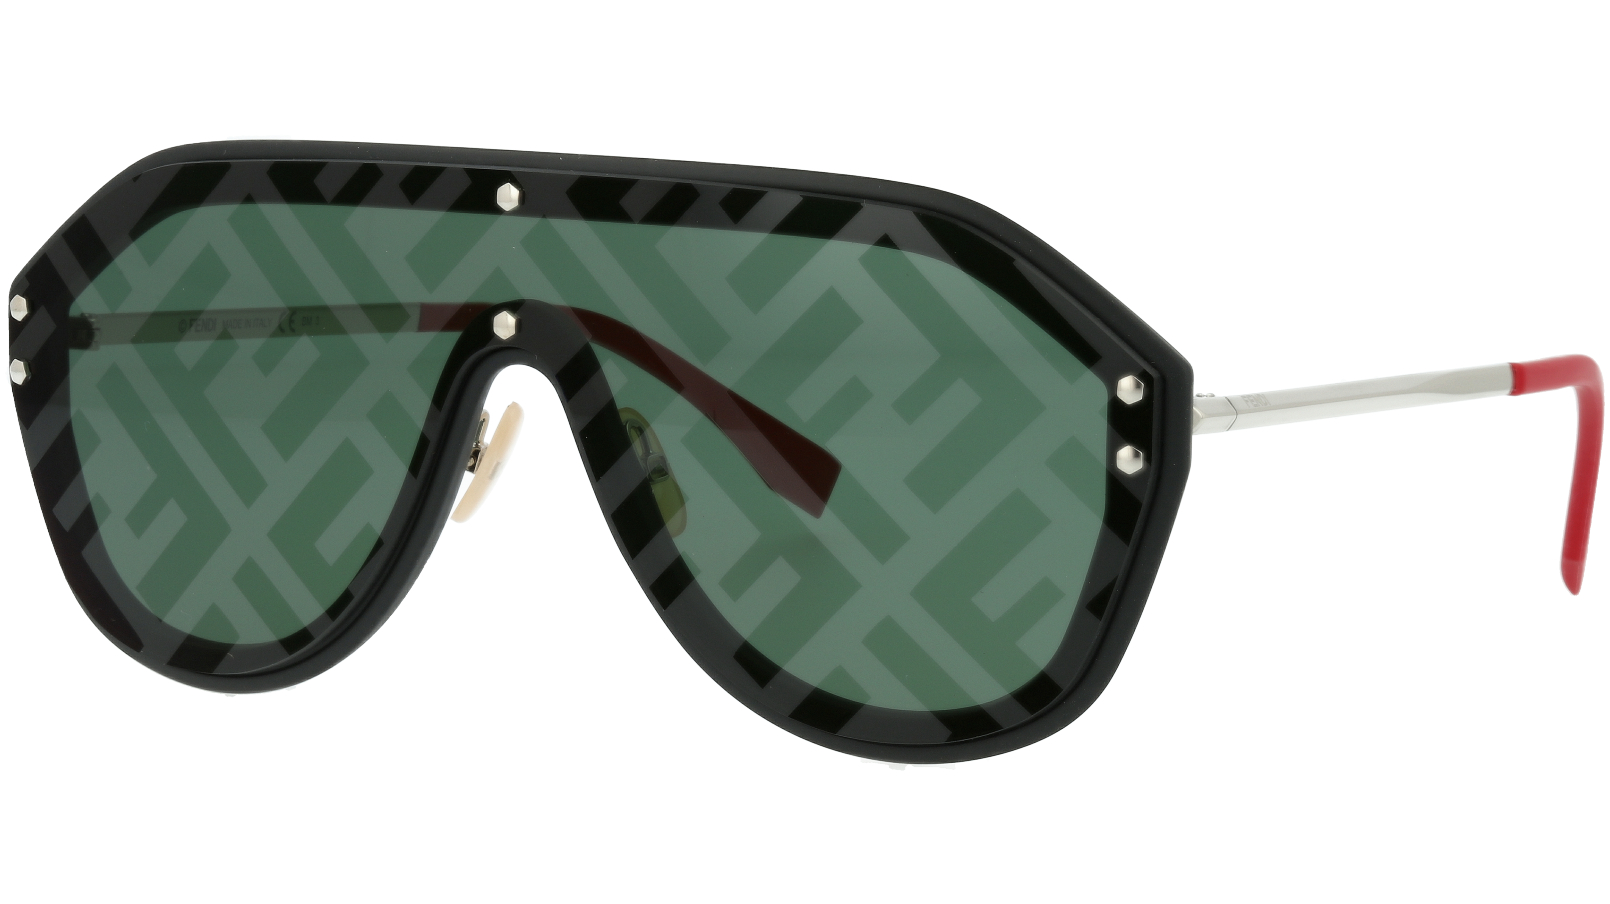 FENDI FFM0039/G/S 807XR 99 Black Shield Sunglasses